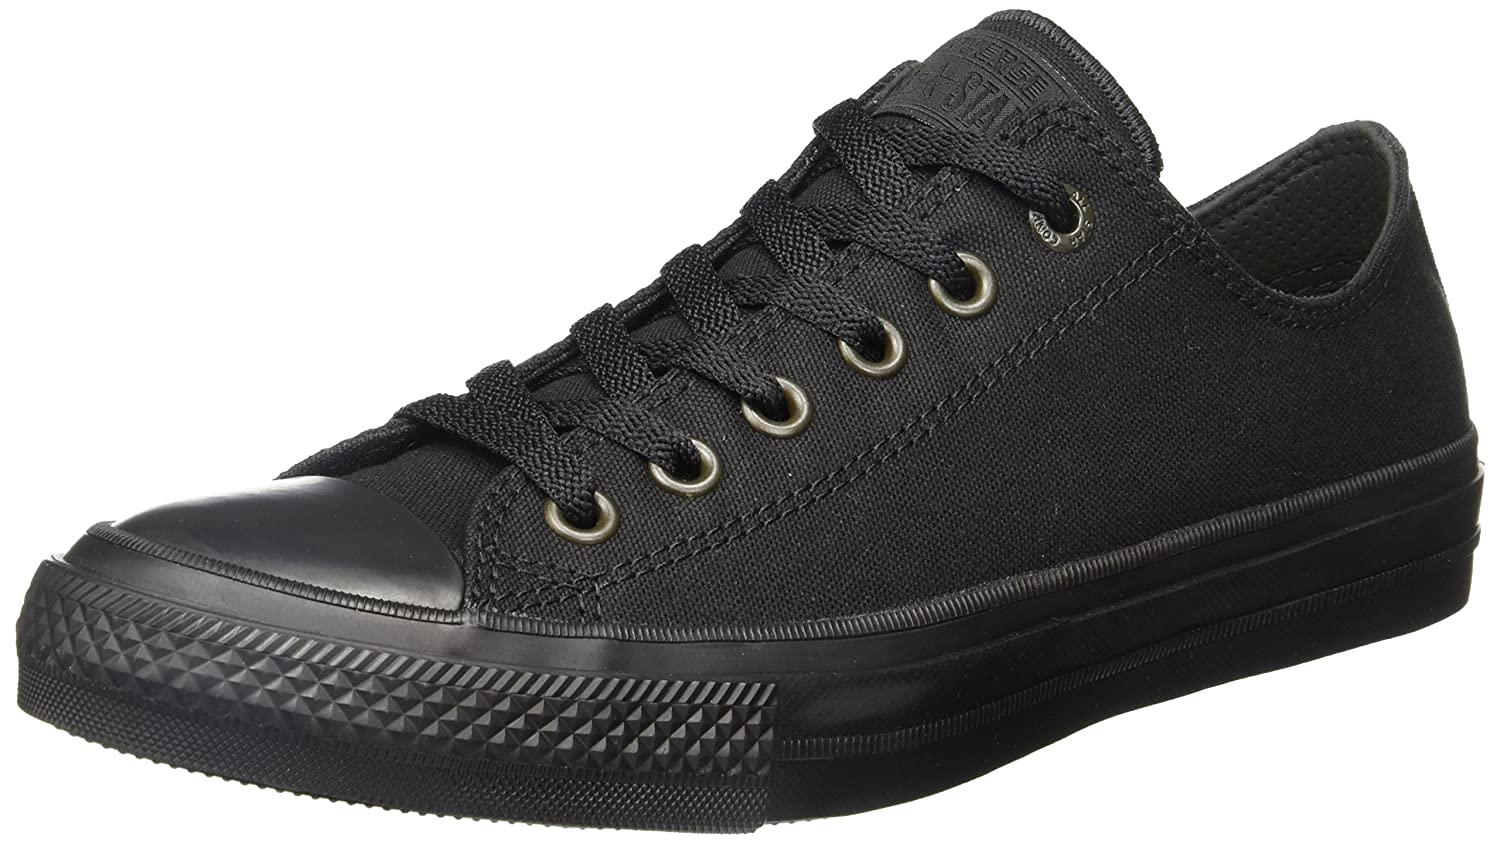 Converse Chuck Taylor All Star Core Ox B010RYAIZK 3.5 D(M) US|Black Mono